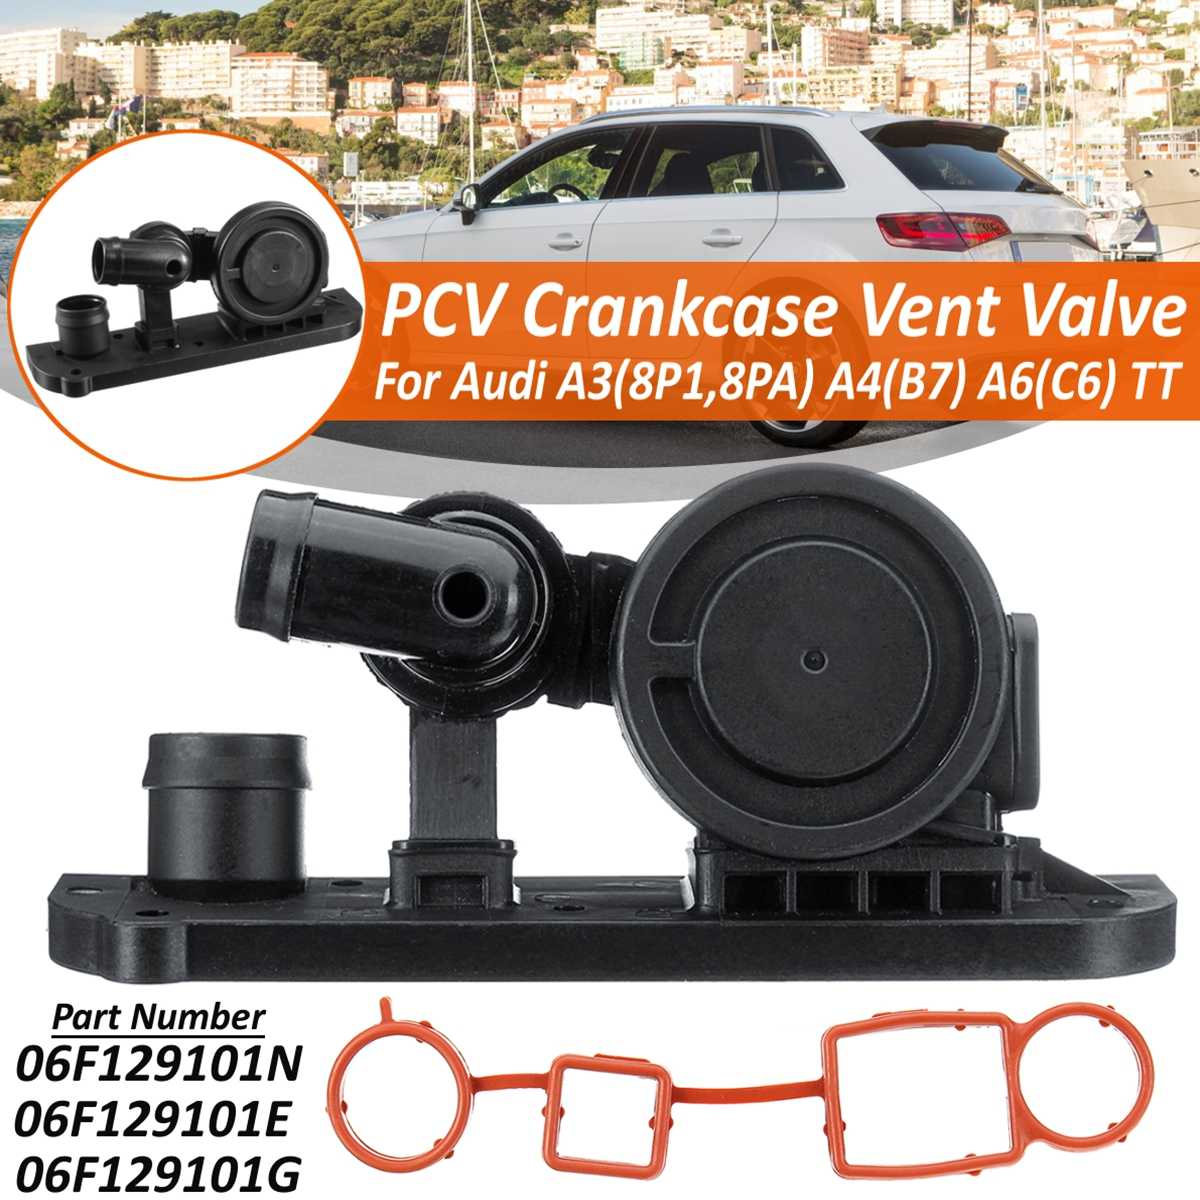 06F129101N  PCV Car Crankcase Vent Valve & Gasket For Audi A3 A4 A6 TT For VW Golf Passat For Jetta 2001-2012 06F129101E